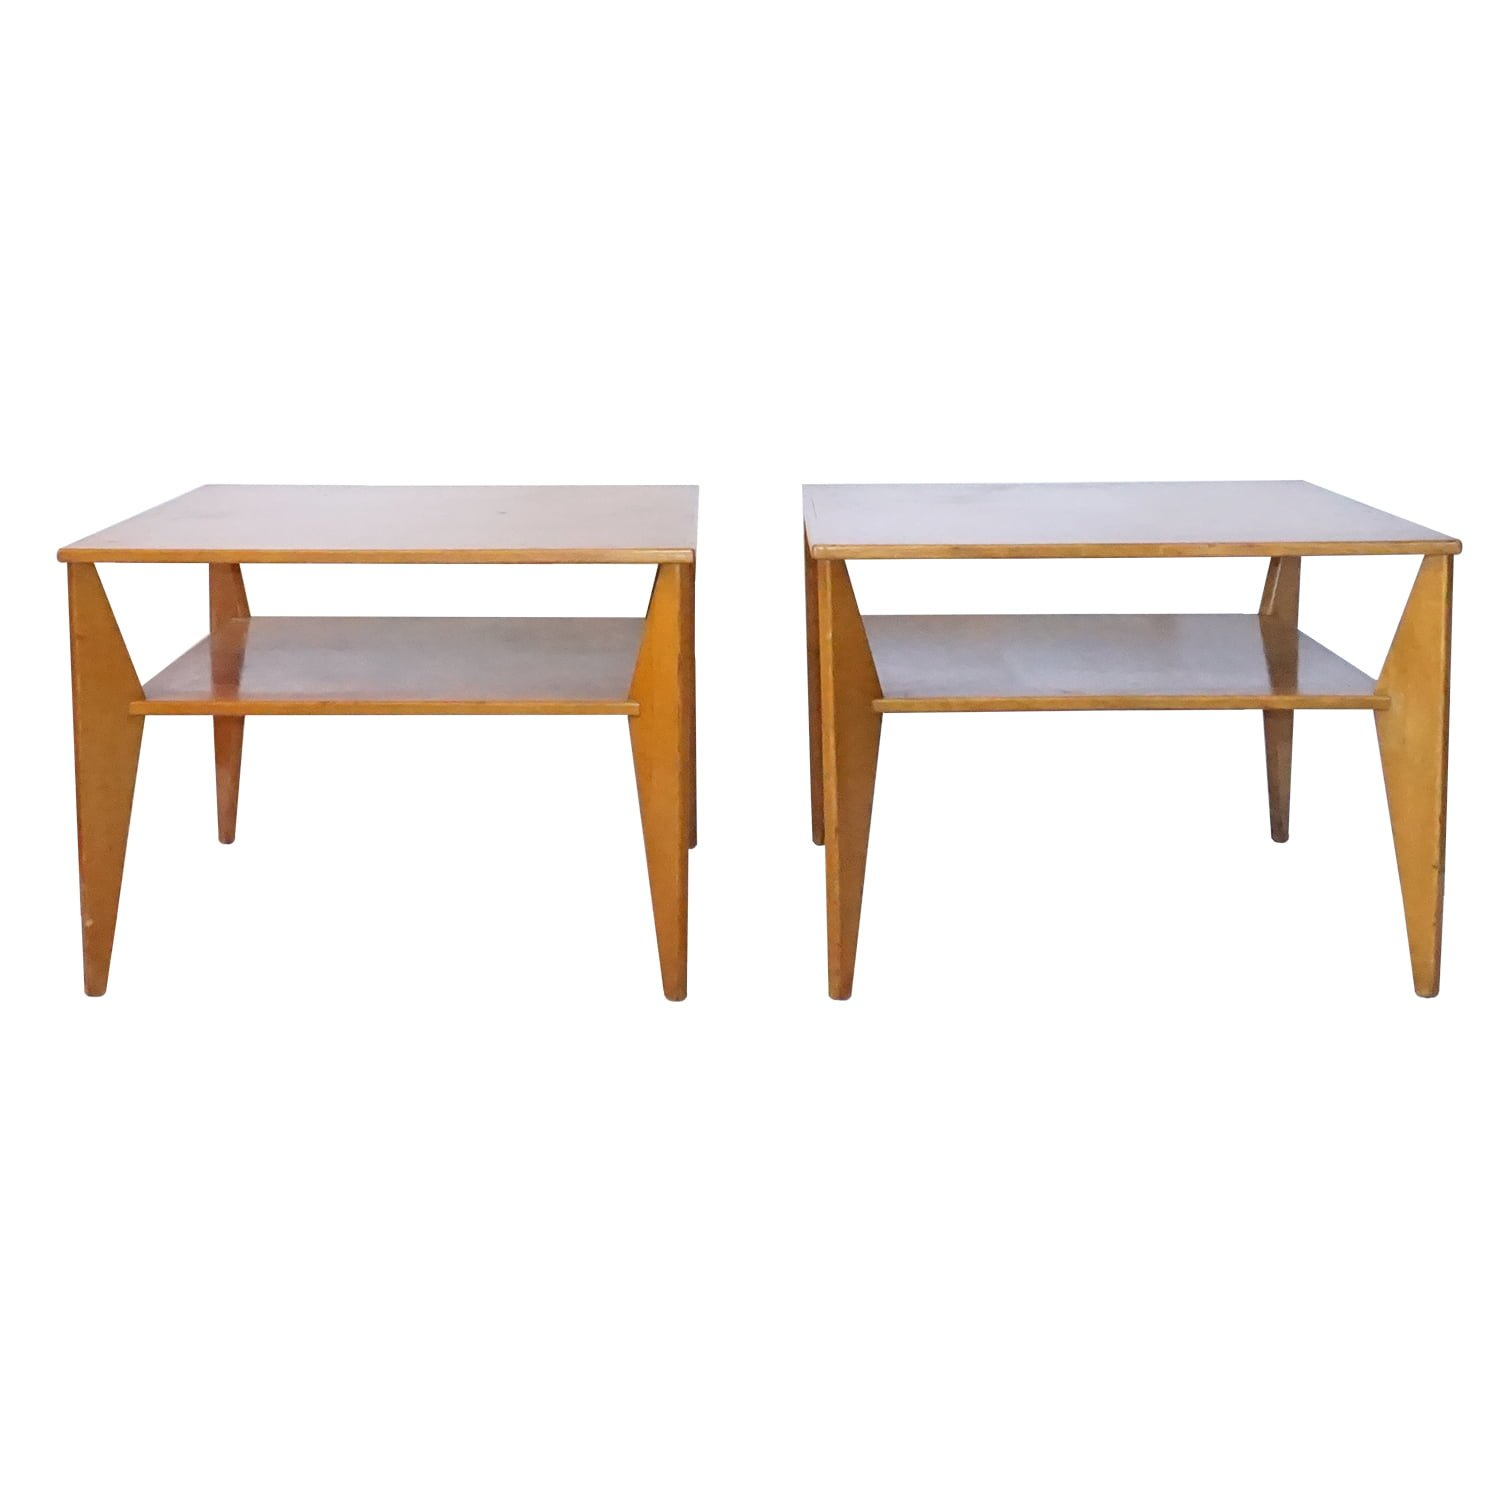 20th Century Swedish Pair of Two Tiers – Veneered Wood Side Tables